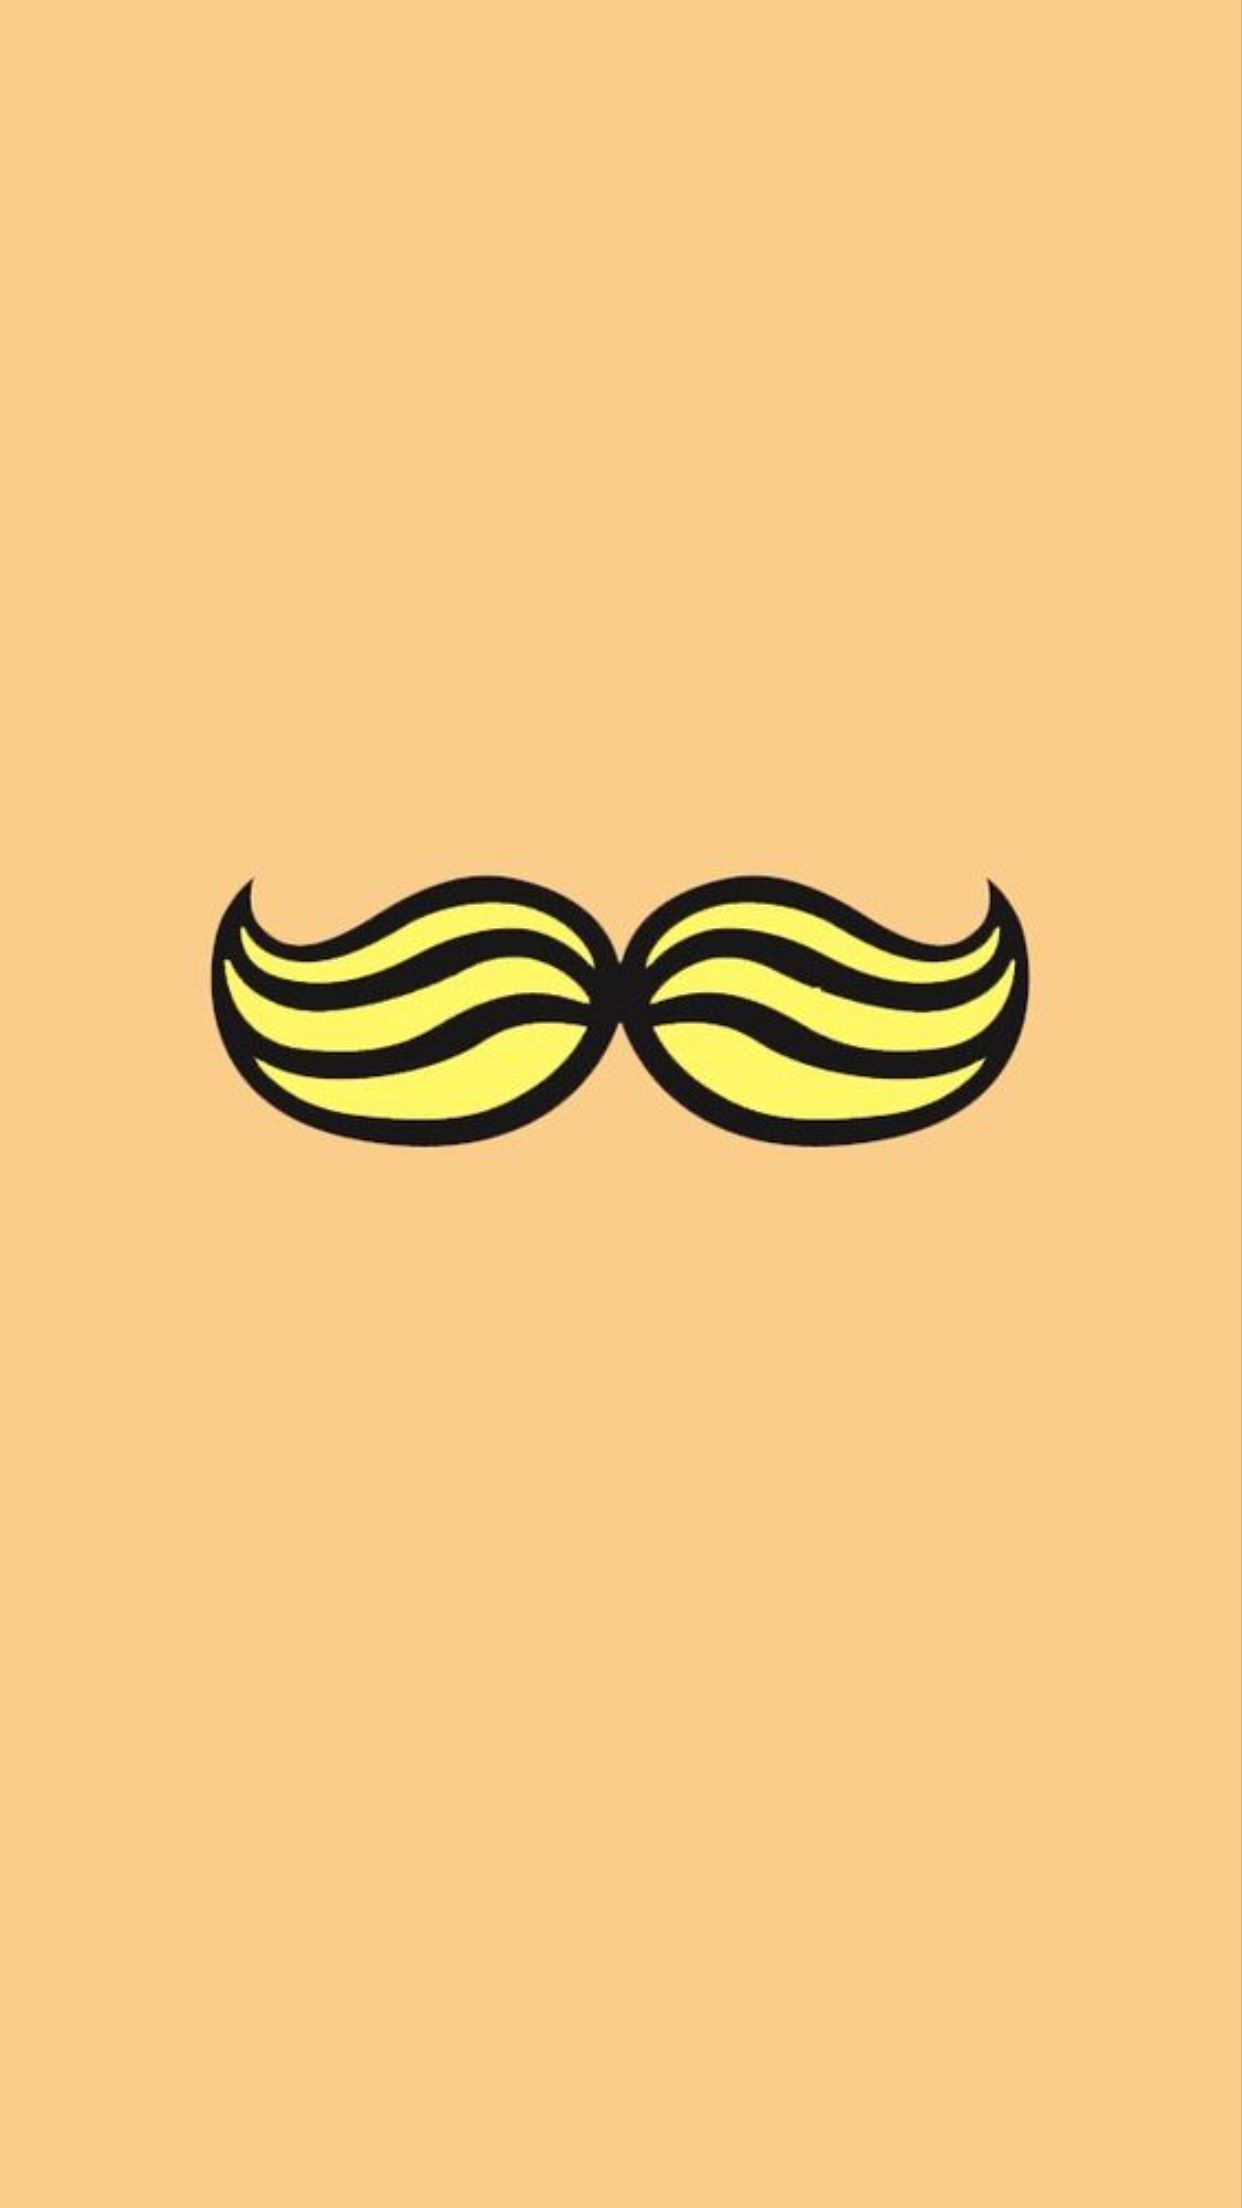 1242x2208 Awesome Mustache Wallpapers for Phones and Walls Mens ...